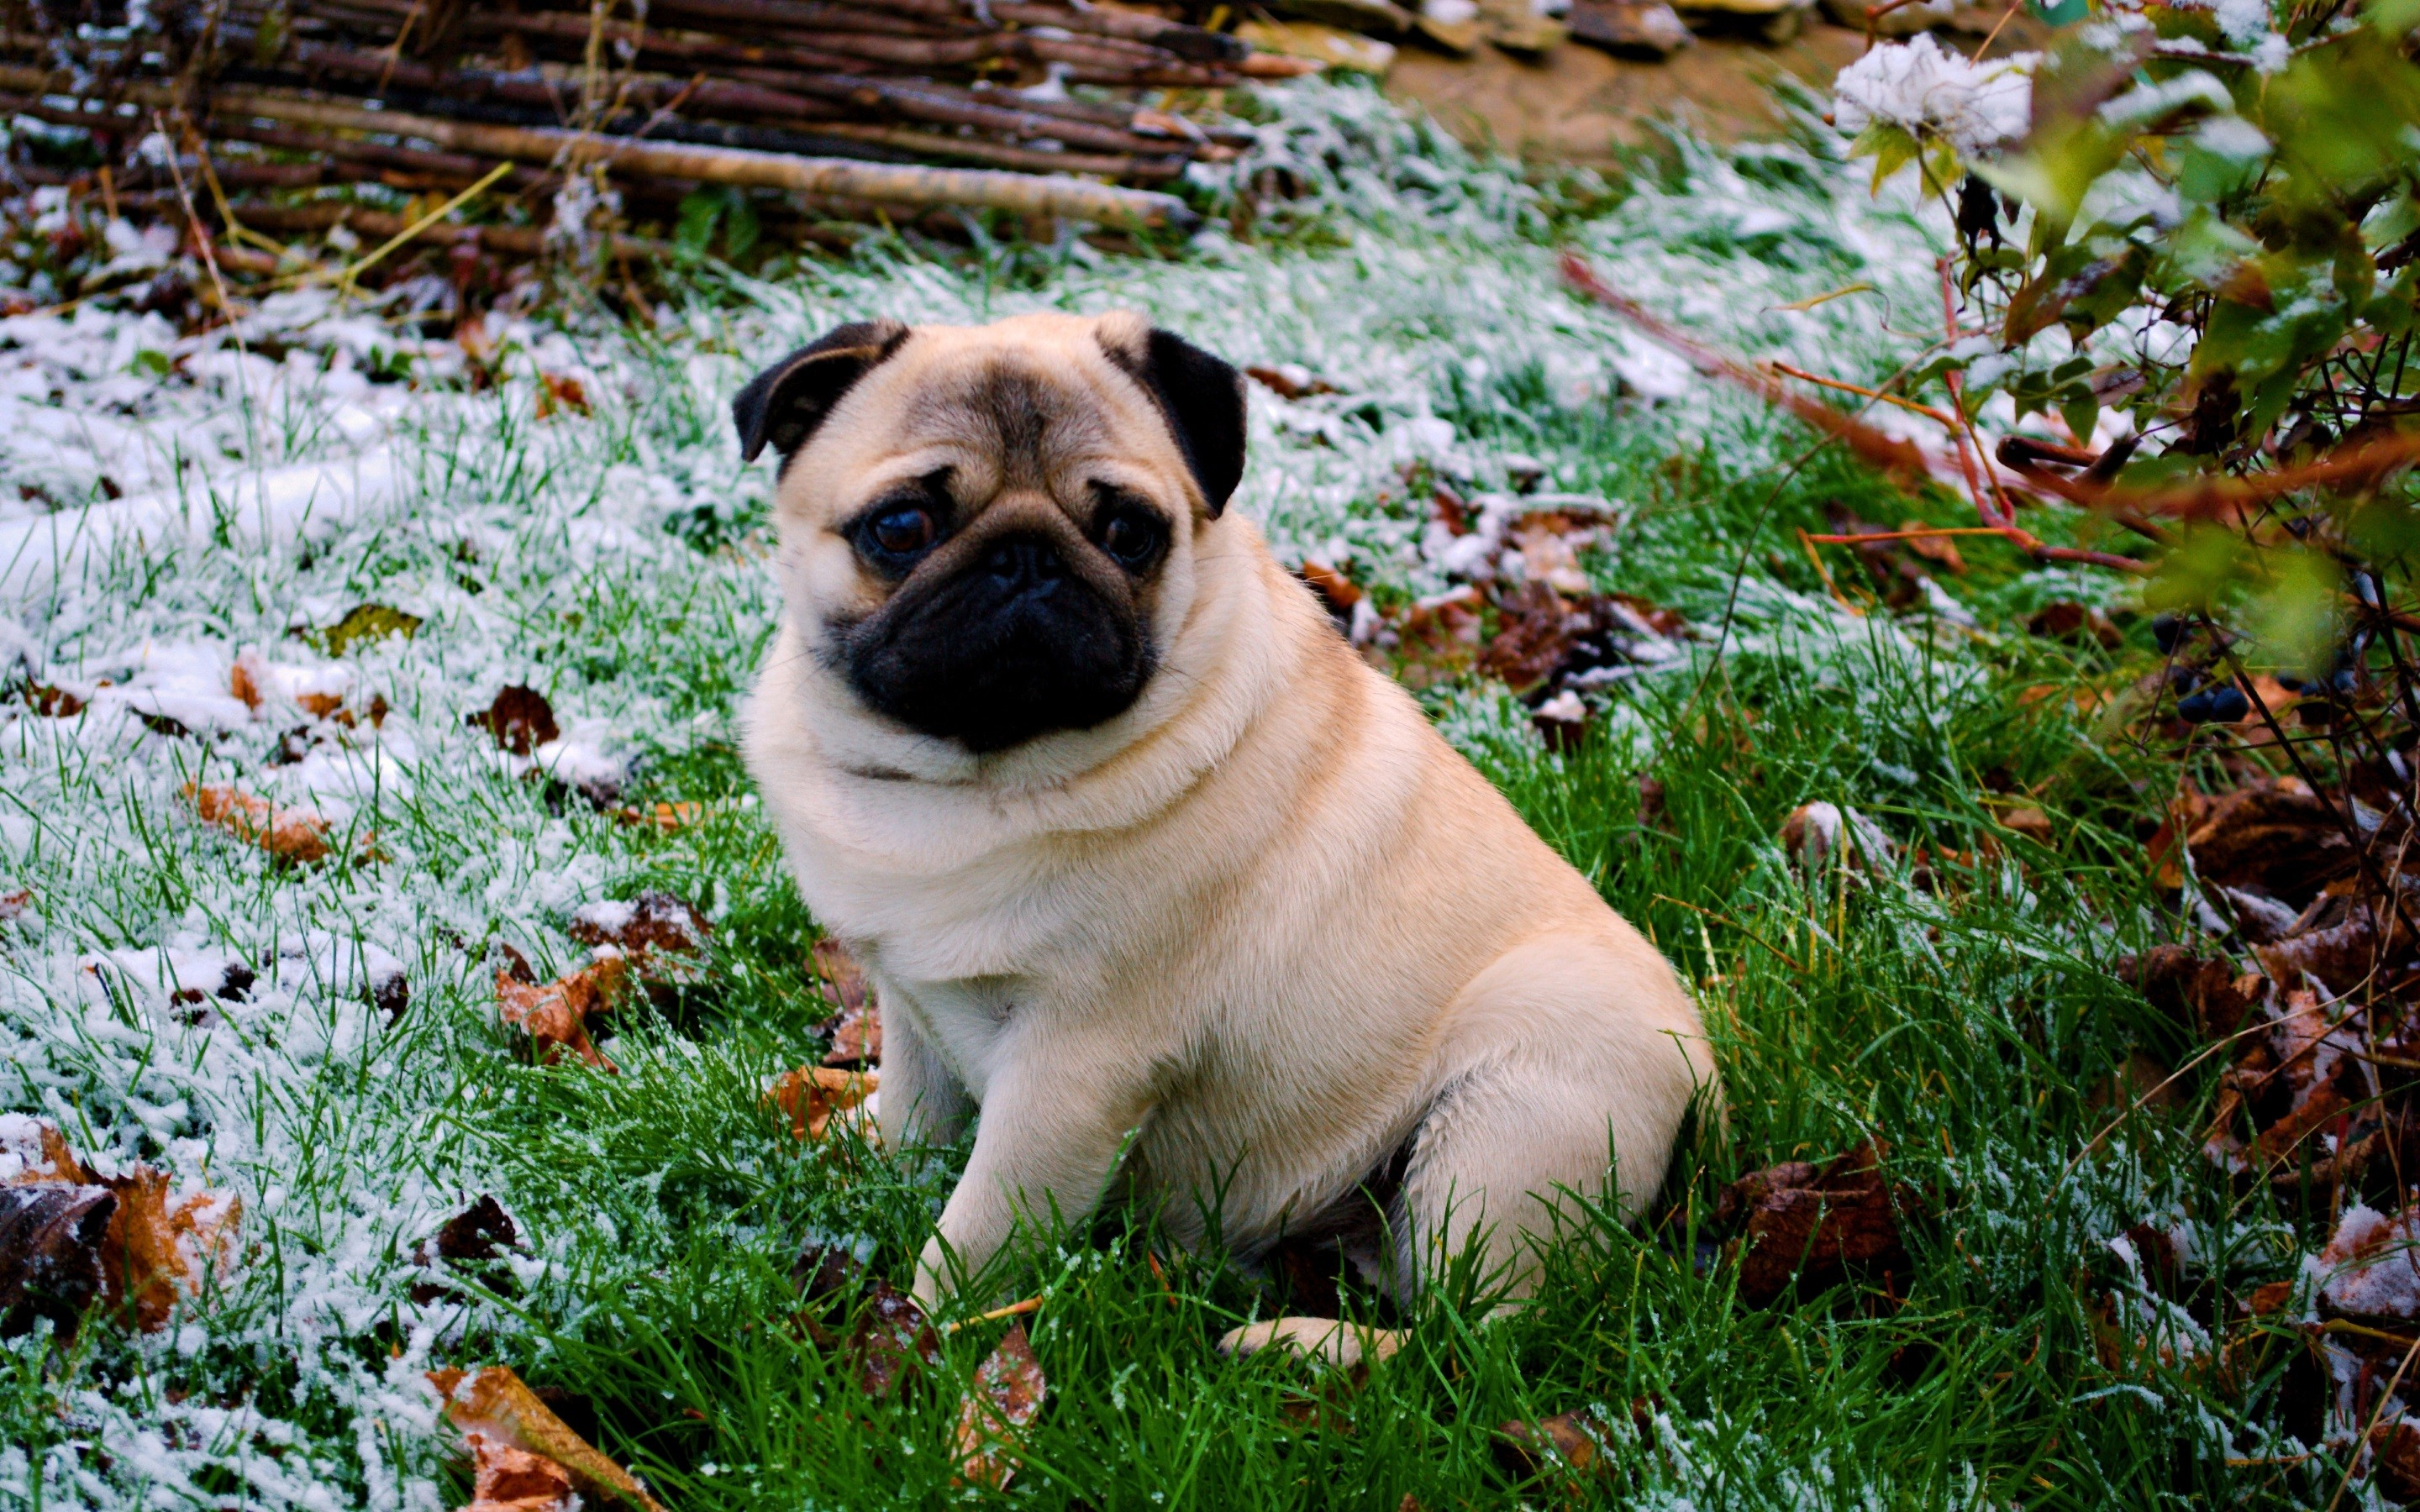 2880x1800 4K HD Wallpaper: Dog Breed - Pug